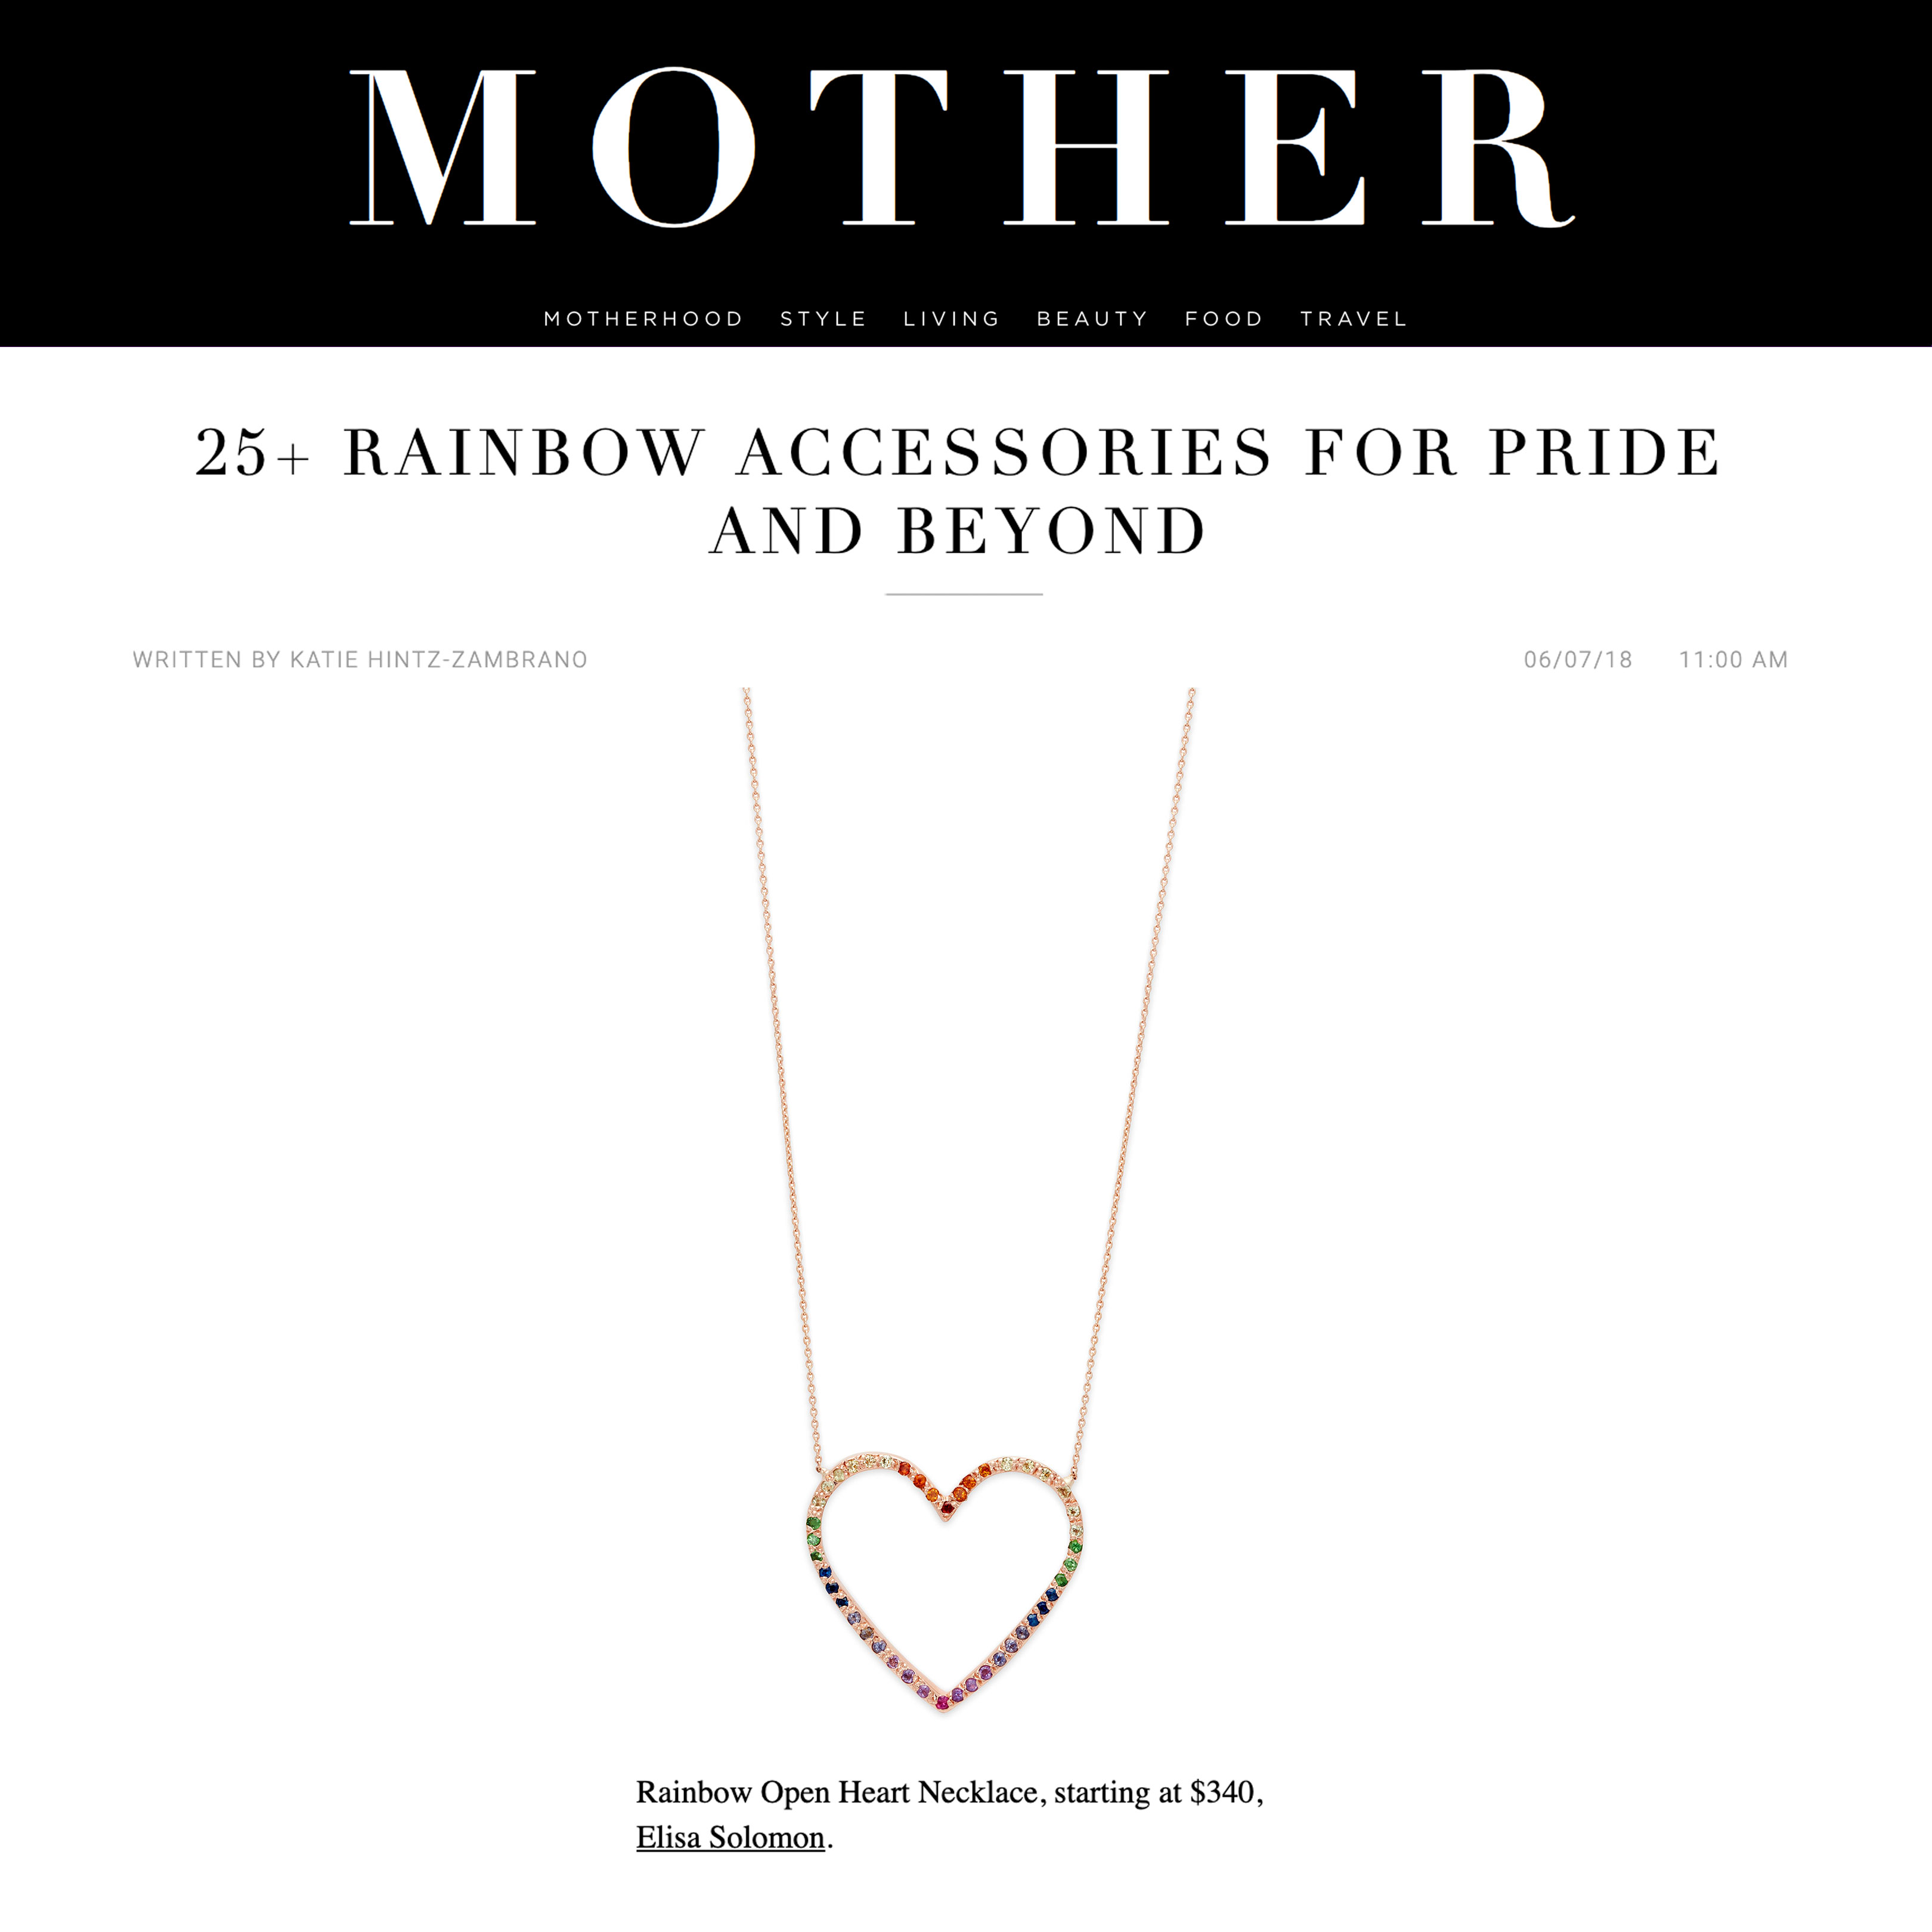 Rainbow Pride Handmade Heart Necklace in MOTHER Mag